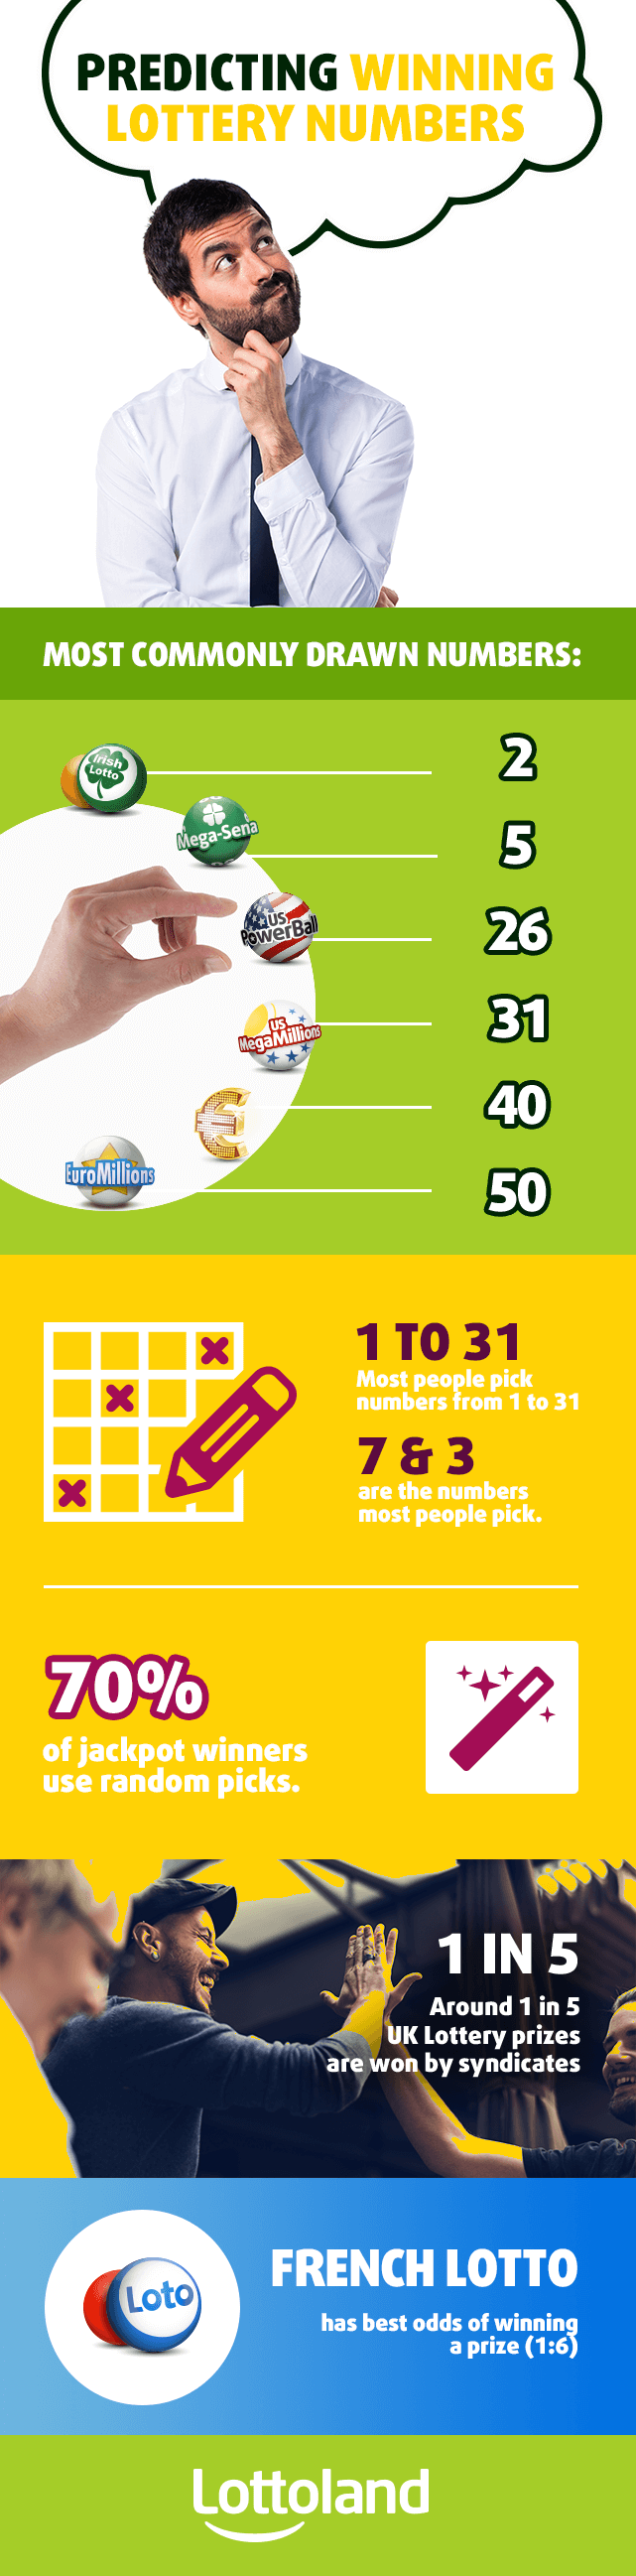 Lottery number predictions - is it possible to do accurately